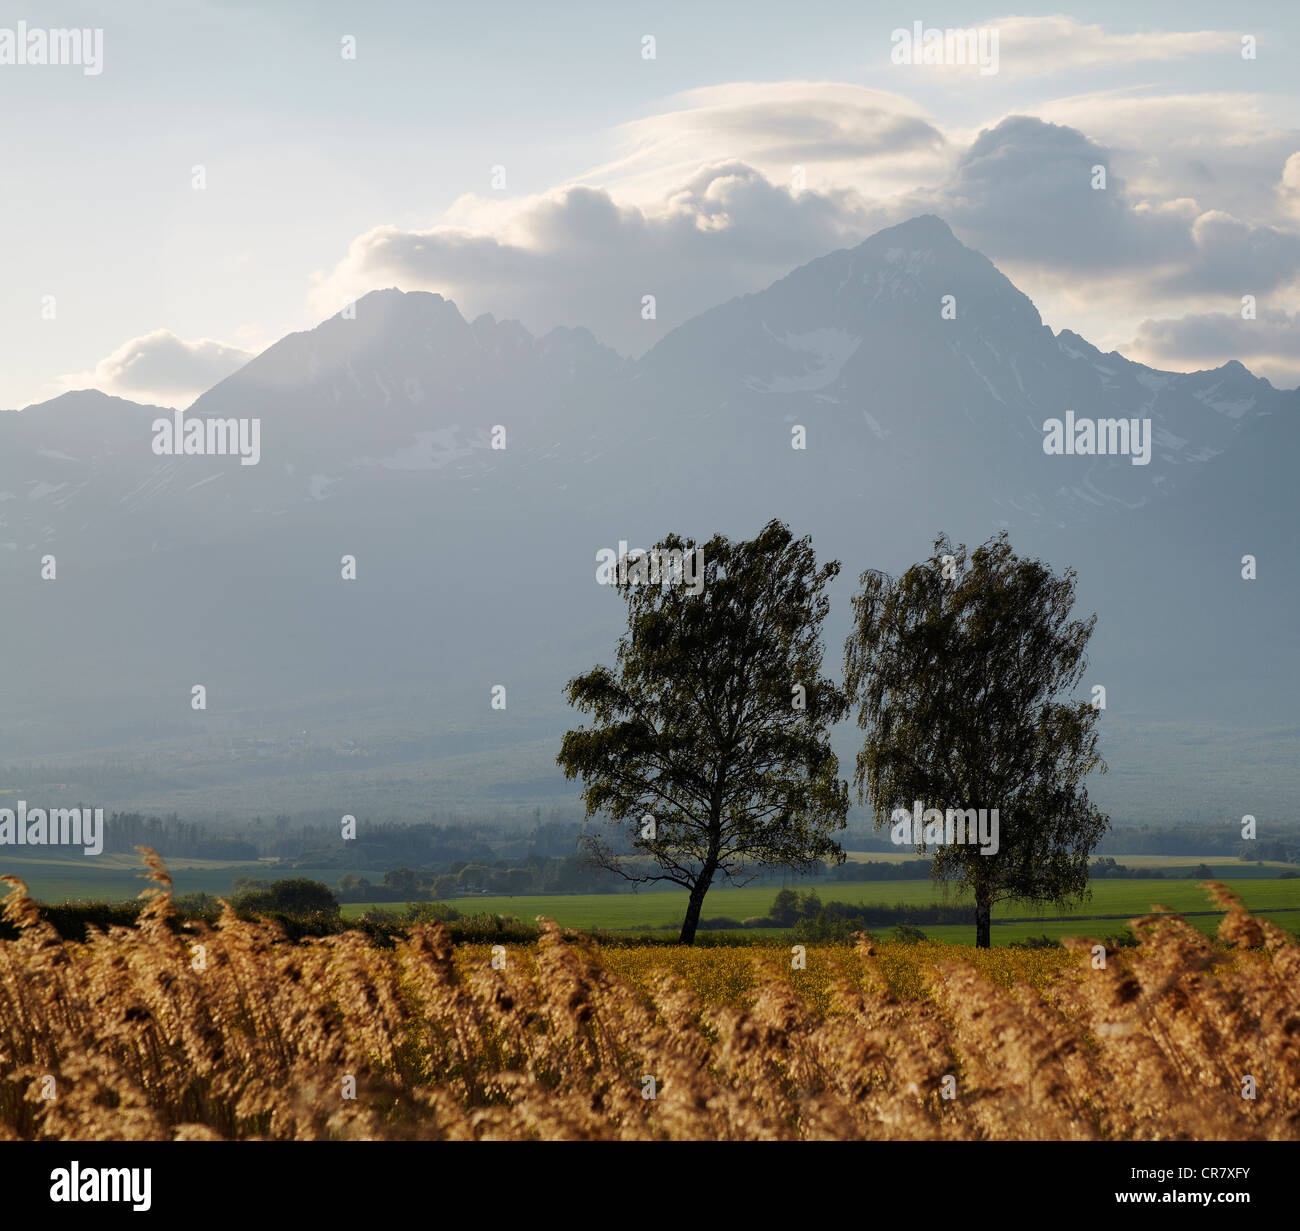 Two trees below cloud cover peaks of the high Tatra mountains in Slovakia - Stock Image